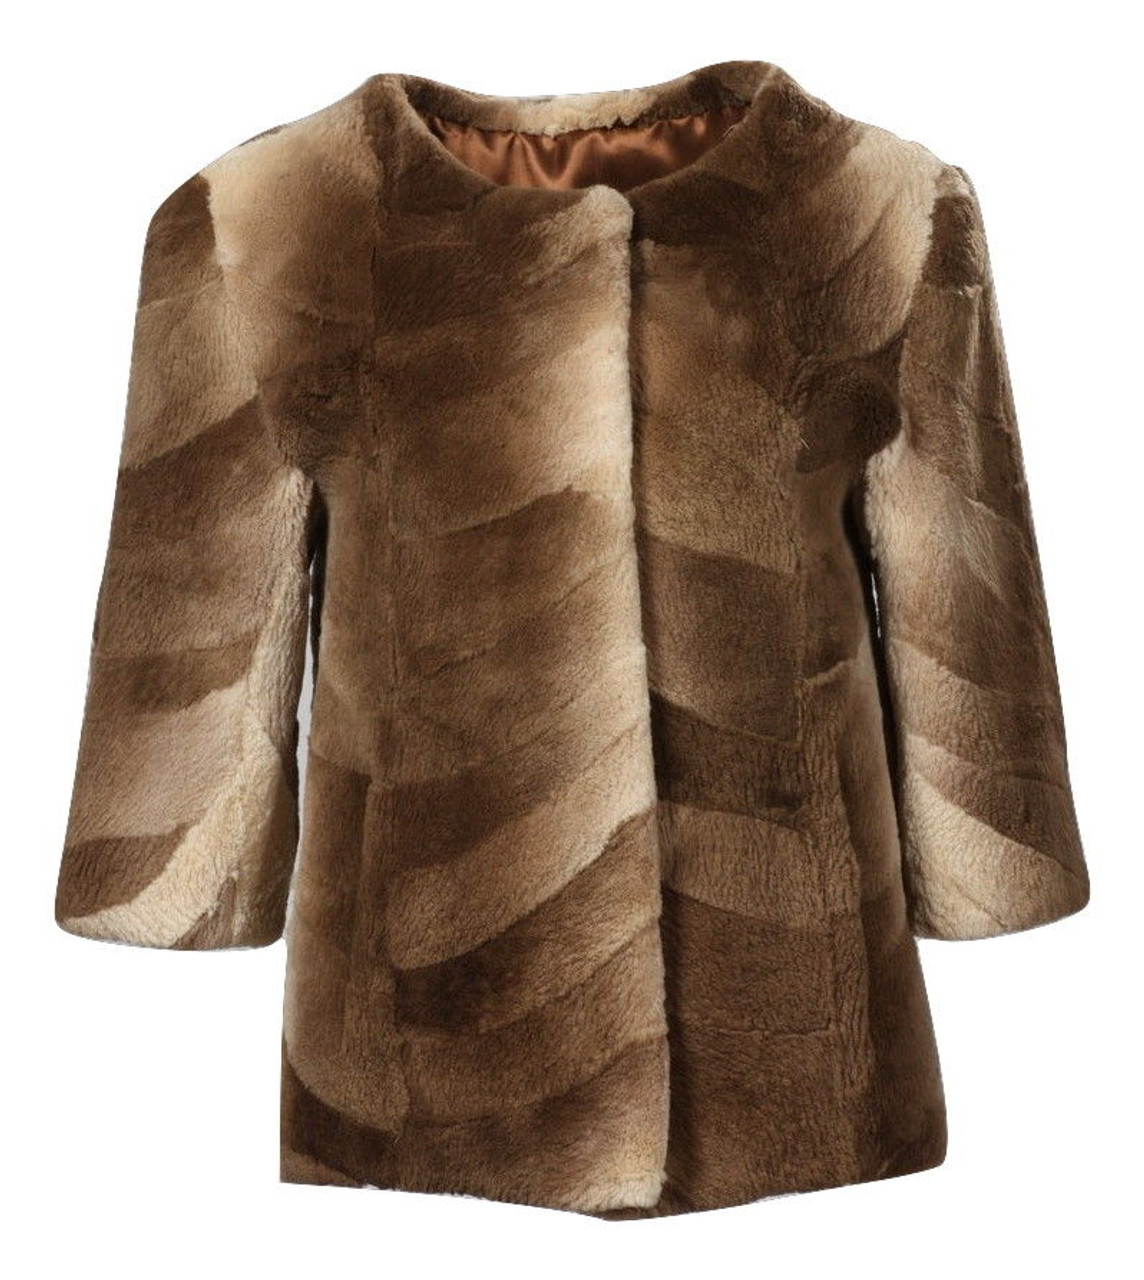 def5eb37e1c Brown Beaver Fur Jacket Sheared 3 4 Sleeves Collarless ghost mannequin